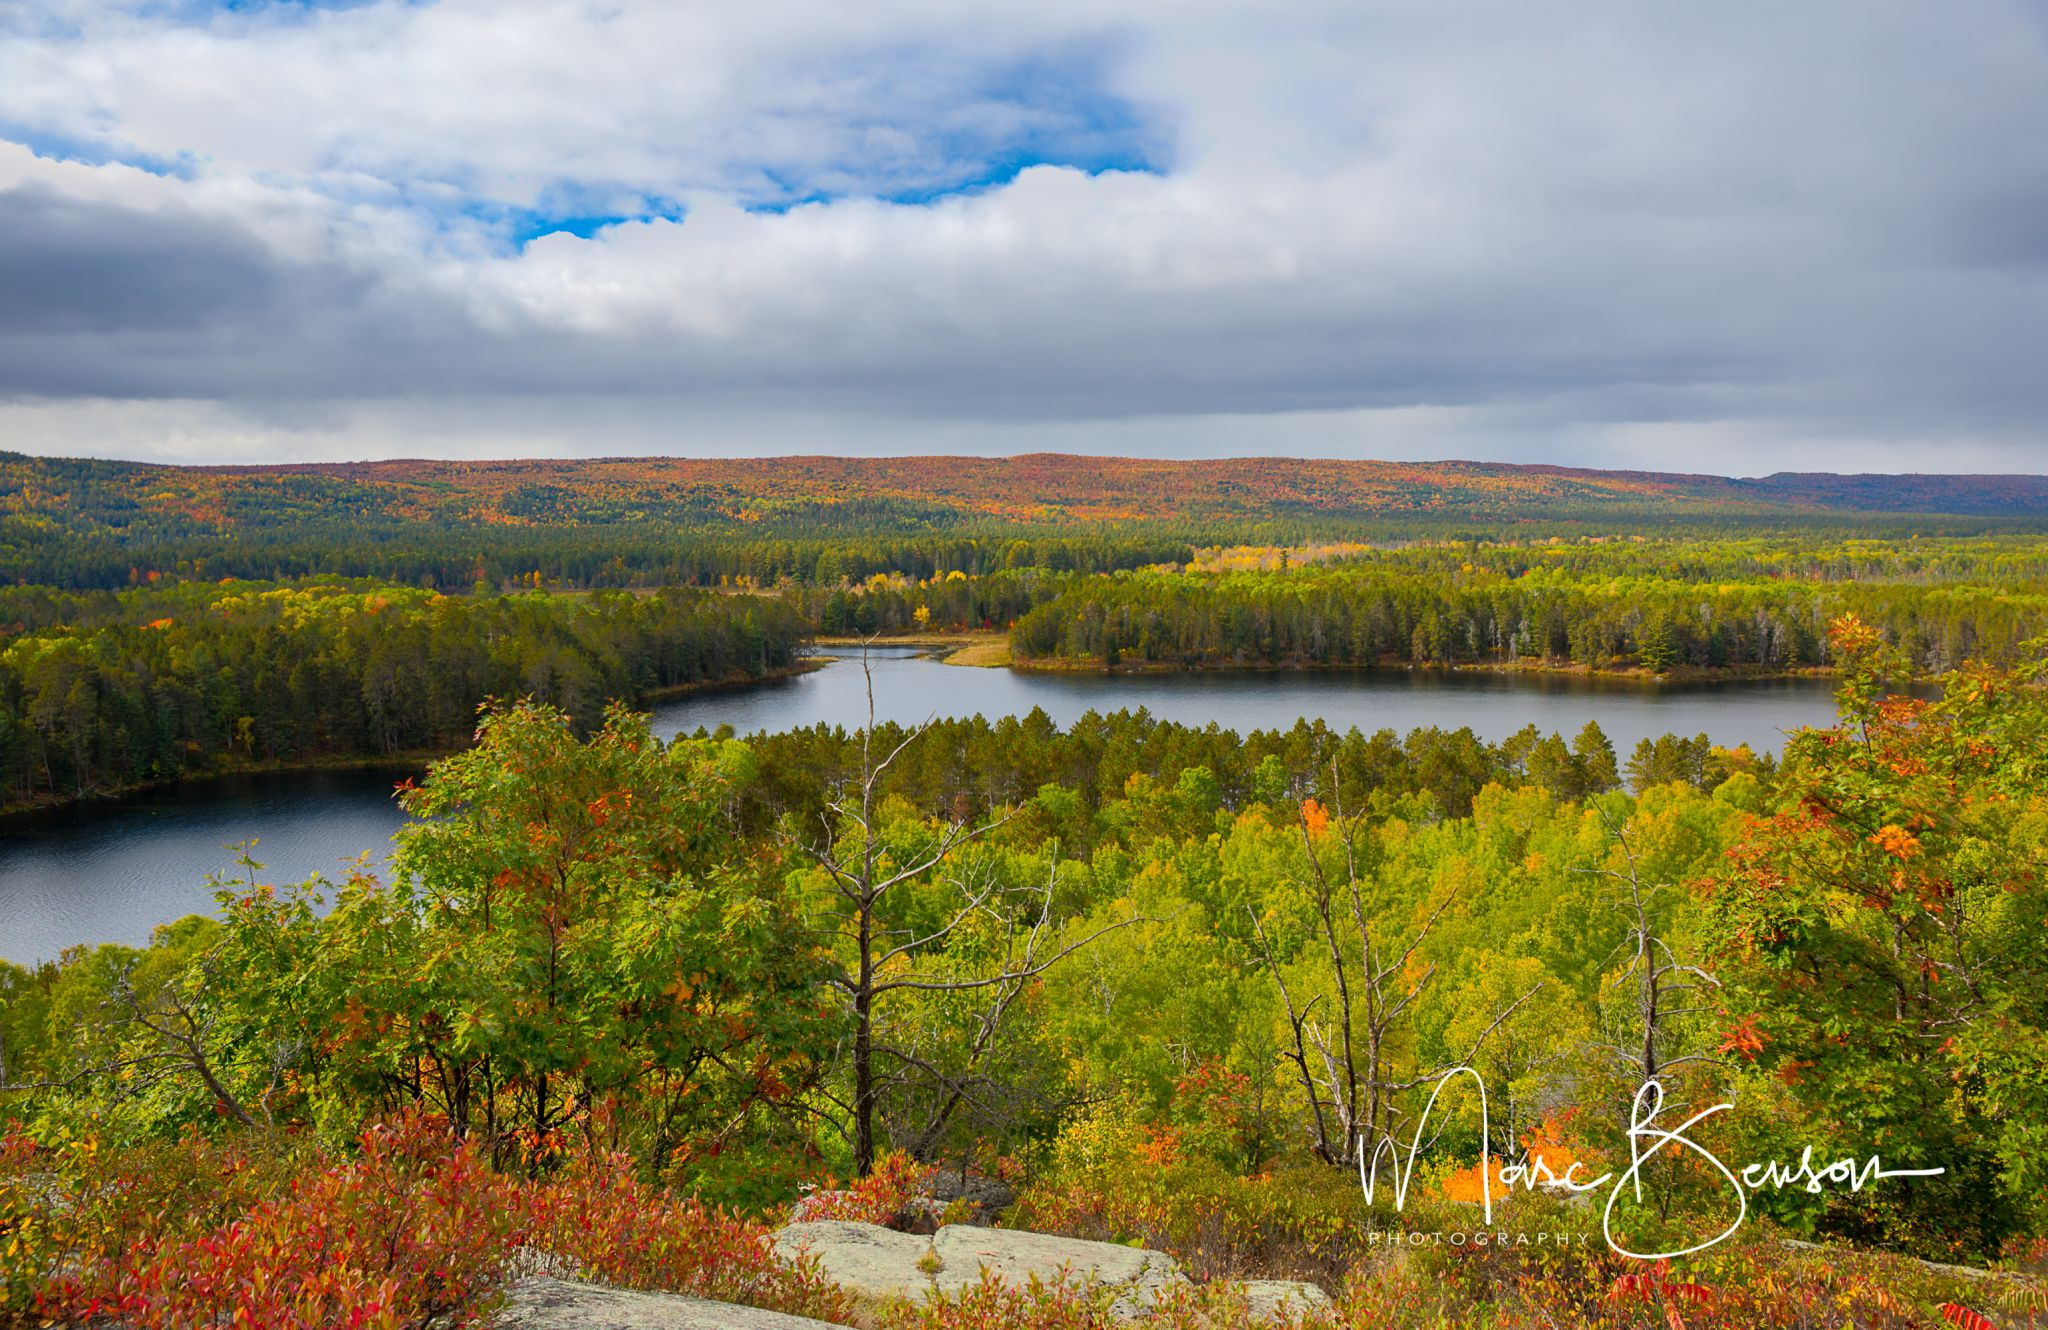 Whispering Pines Lookout on Egg Rock, Canada